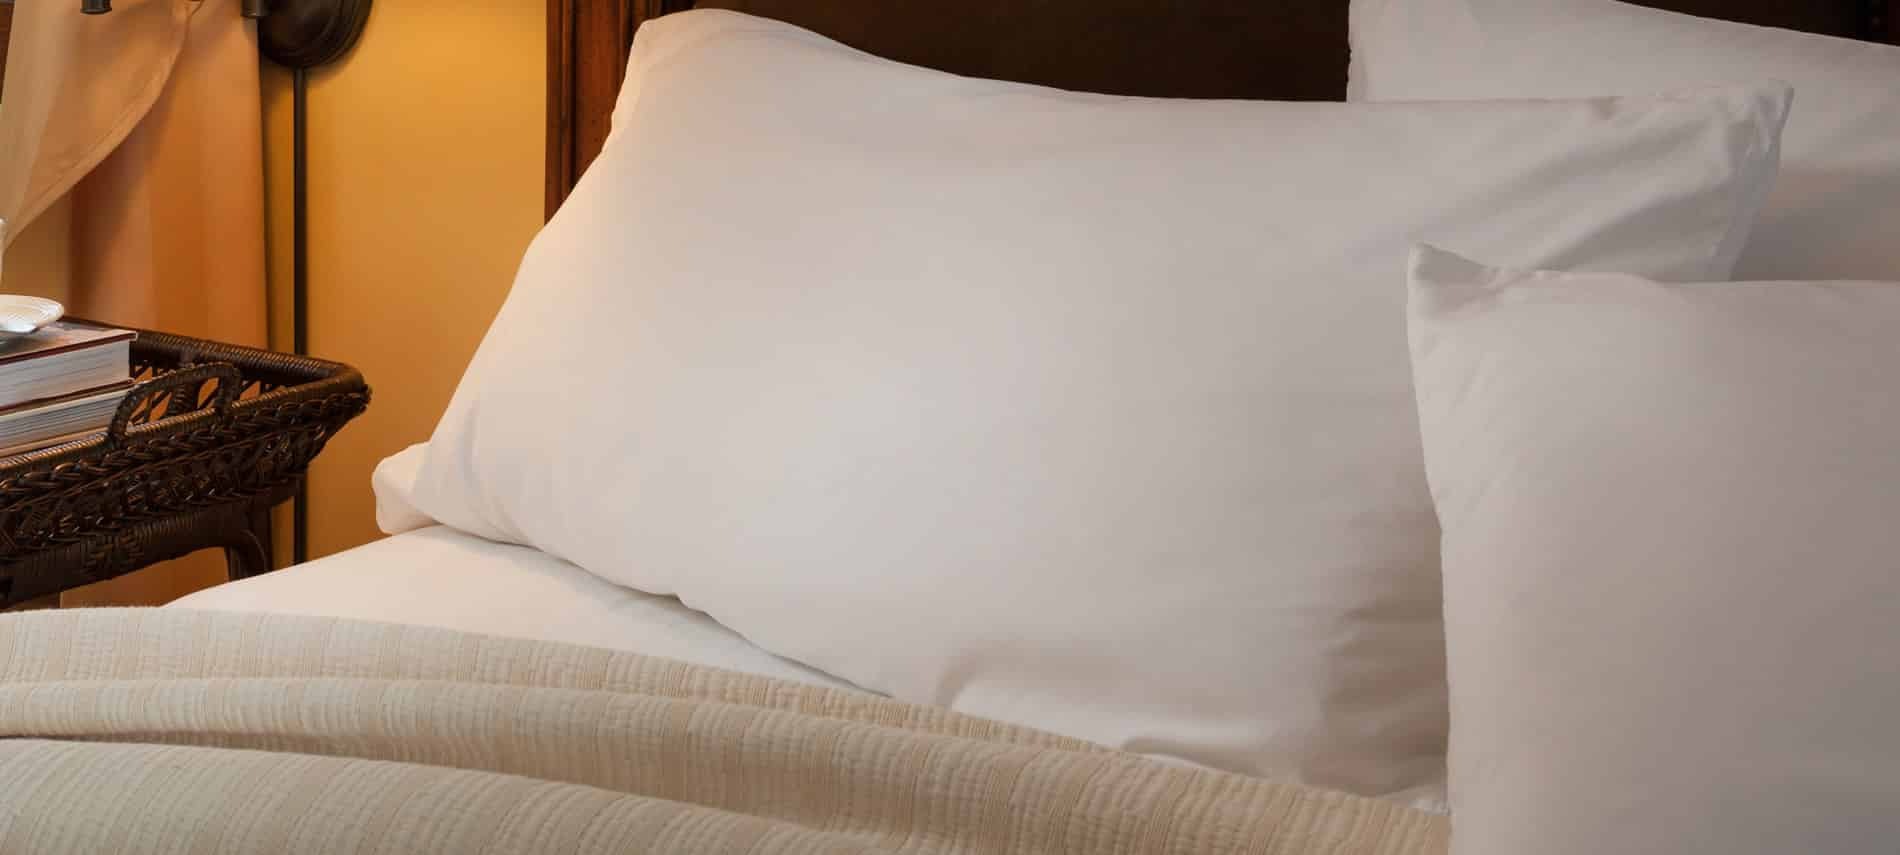 Three white pillows at the top of the bed